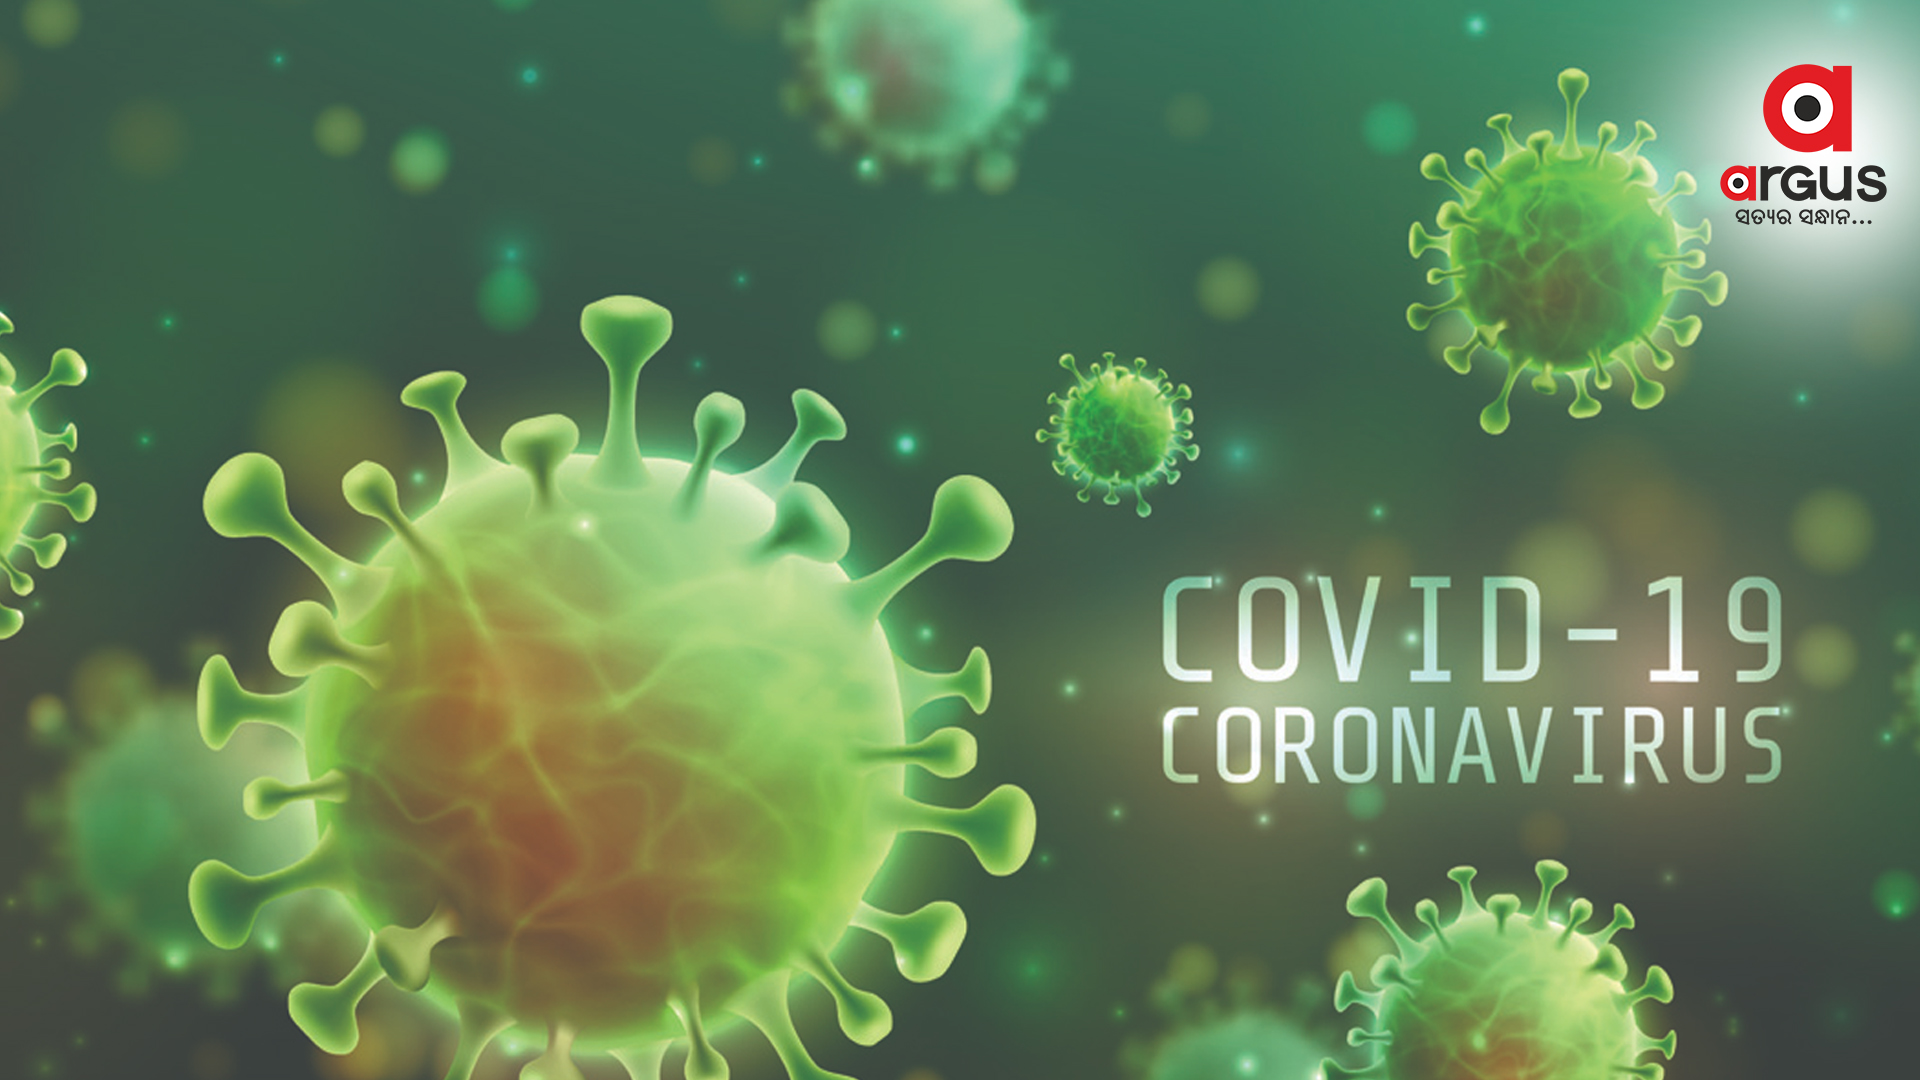 753 more test positive for Covid-19 in Odisha, tally jumps to 308659